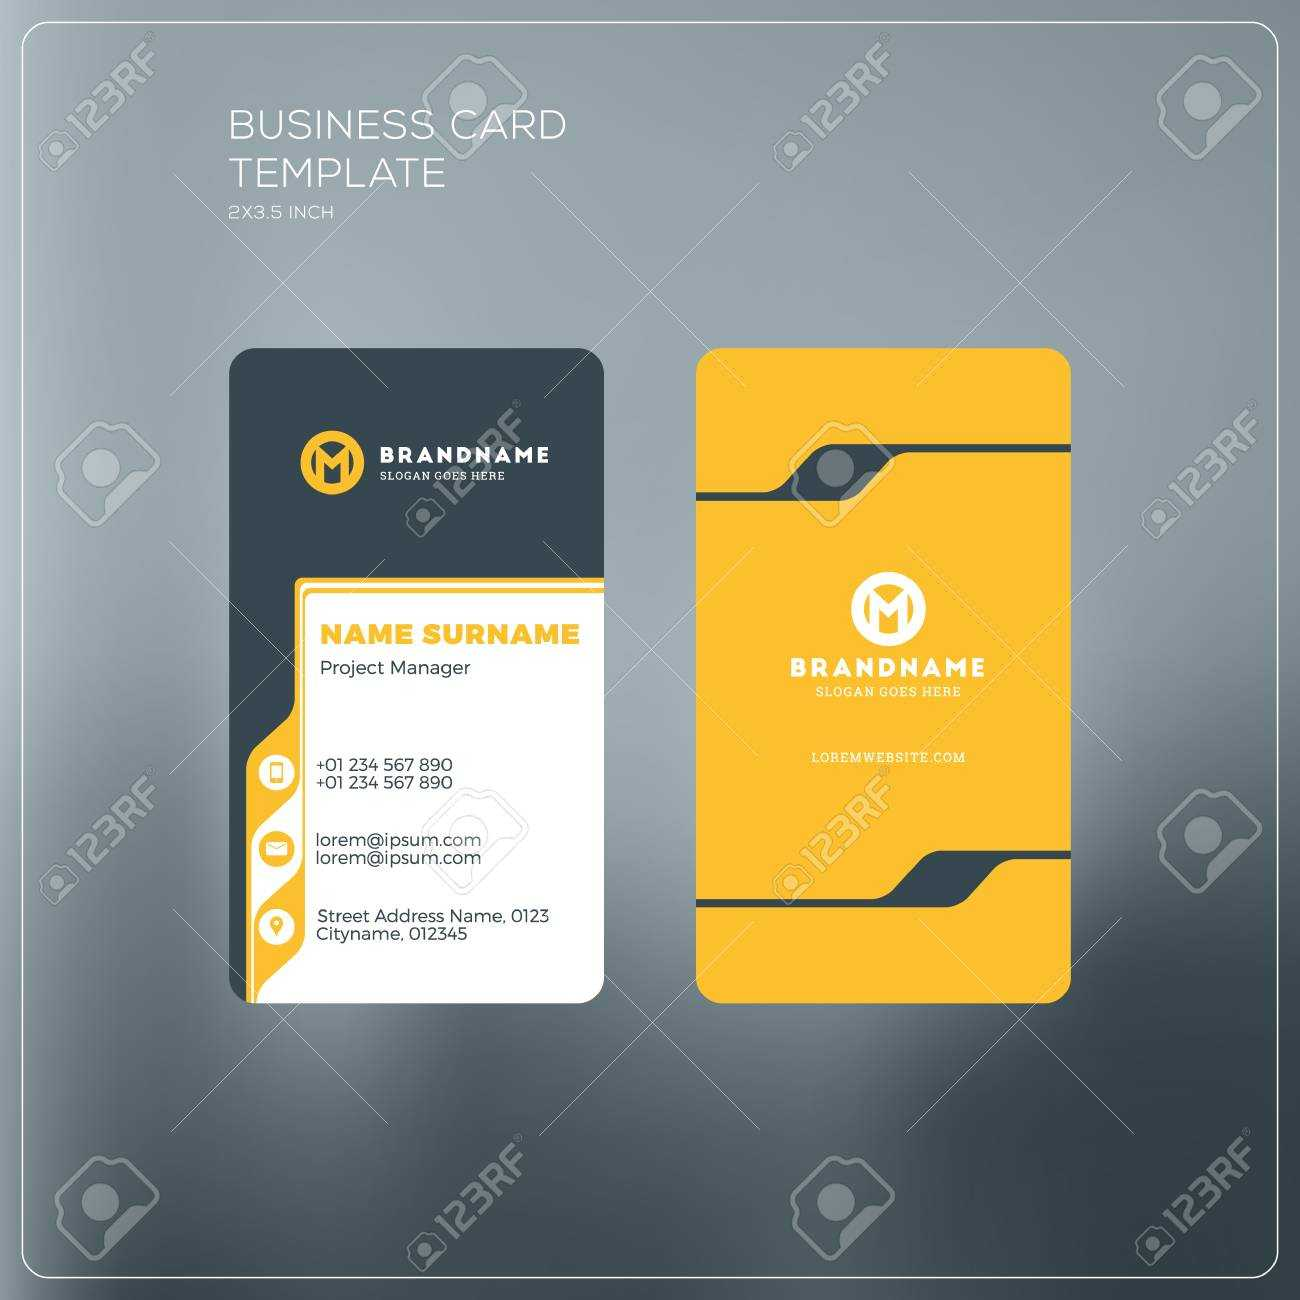 Personal Business Cards Template Pertaining To Google Search Business Card Template